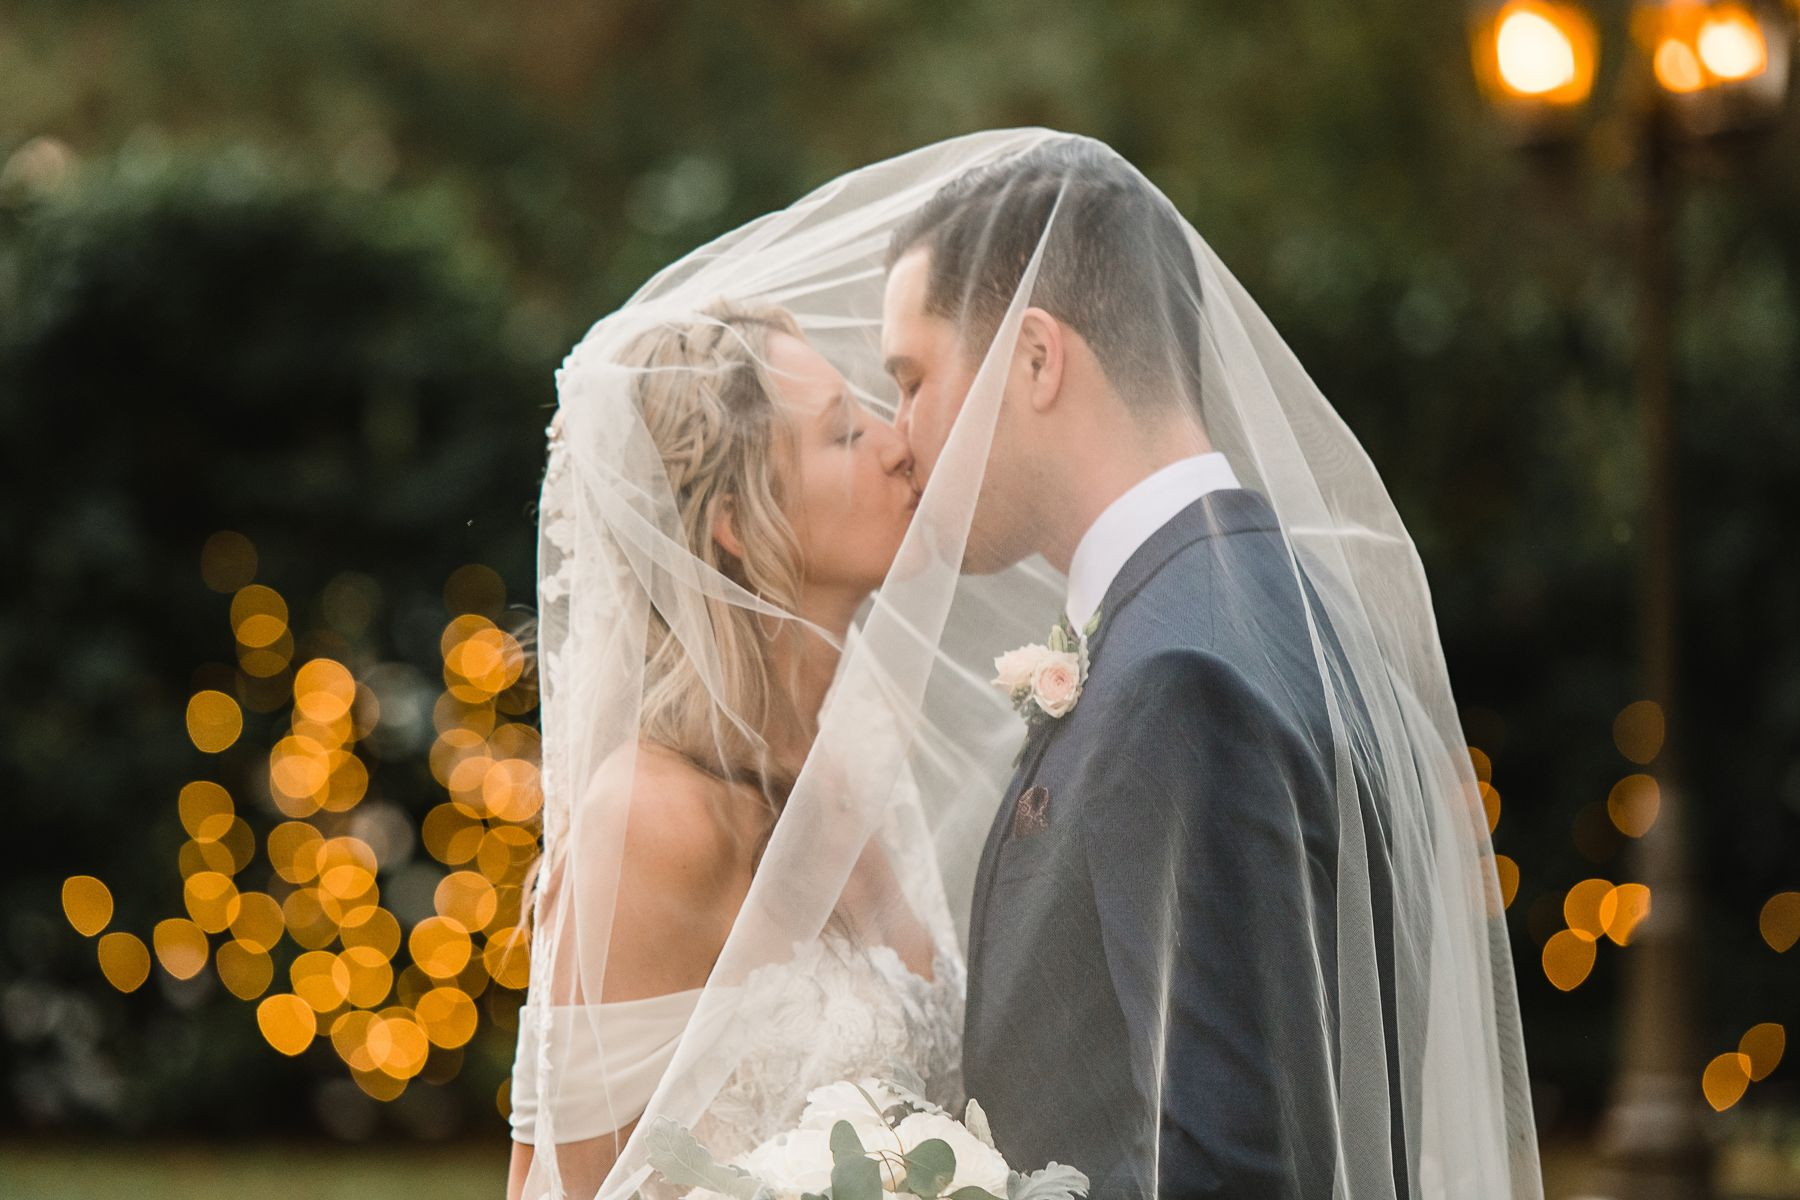 couple kissing under veil at baker's ranch wedding, tampa, fl